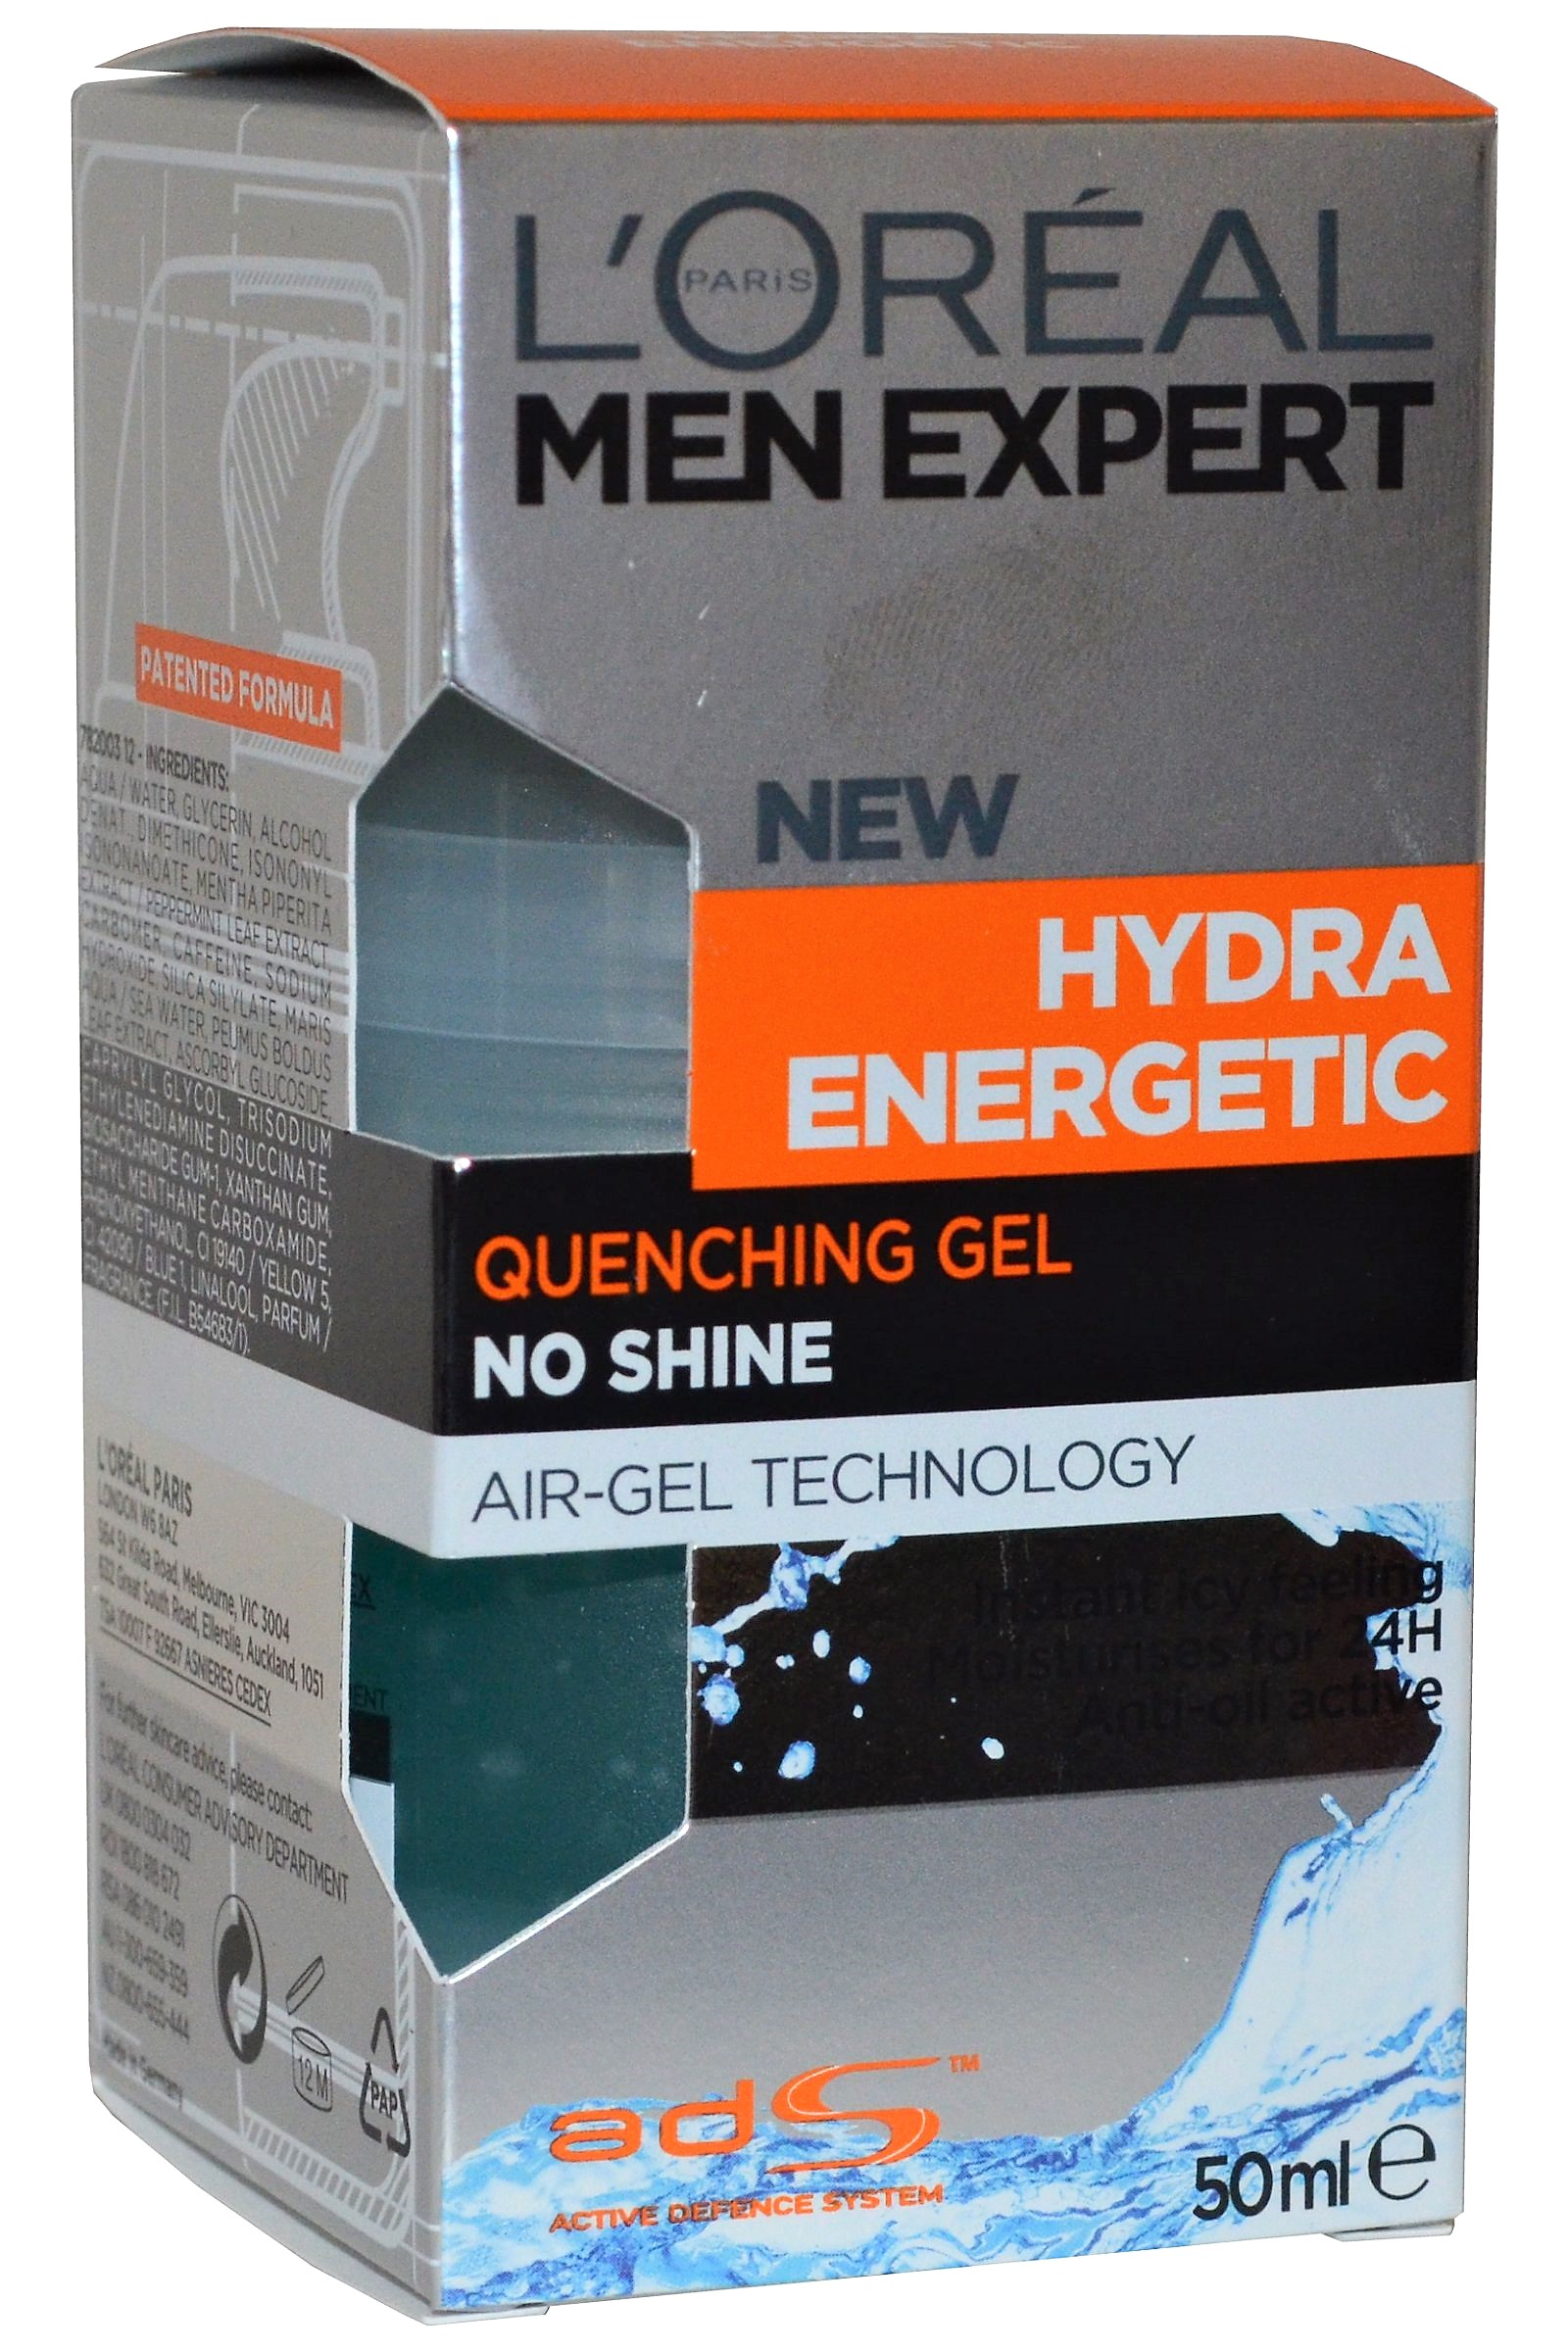 L Oreal Men Expert by L'Oreal Hydra Energetic Quenching Gel 50ml